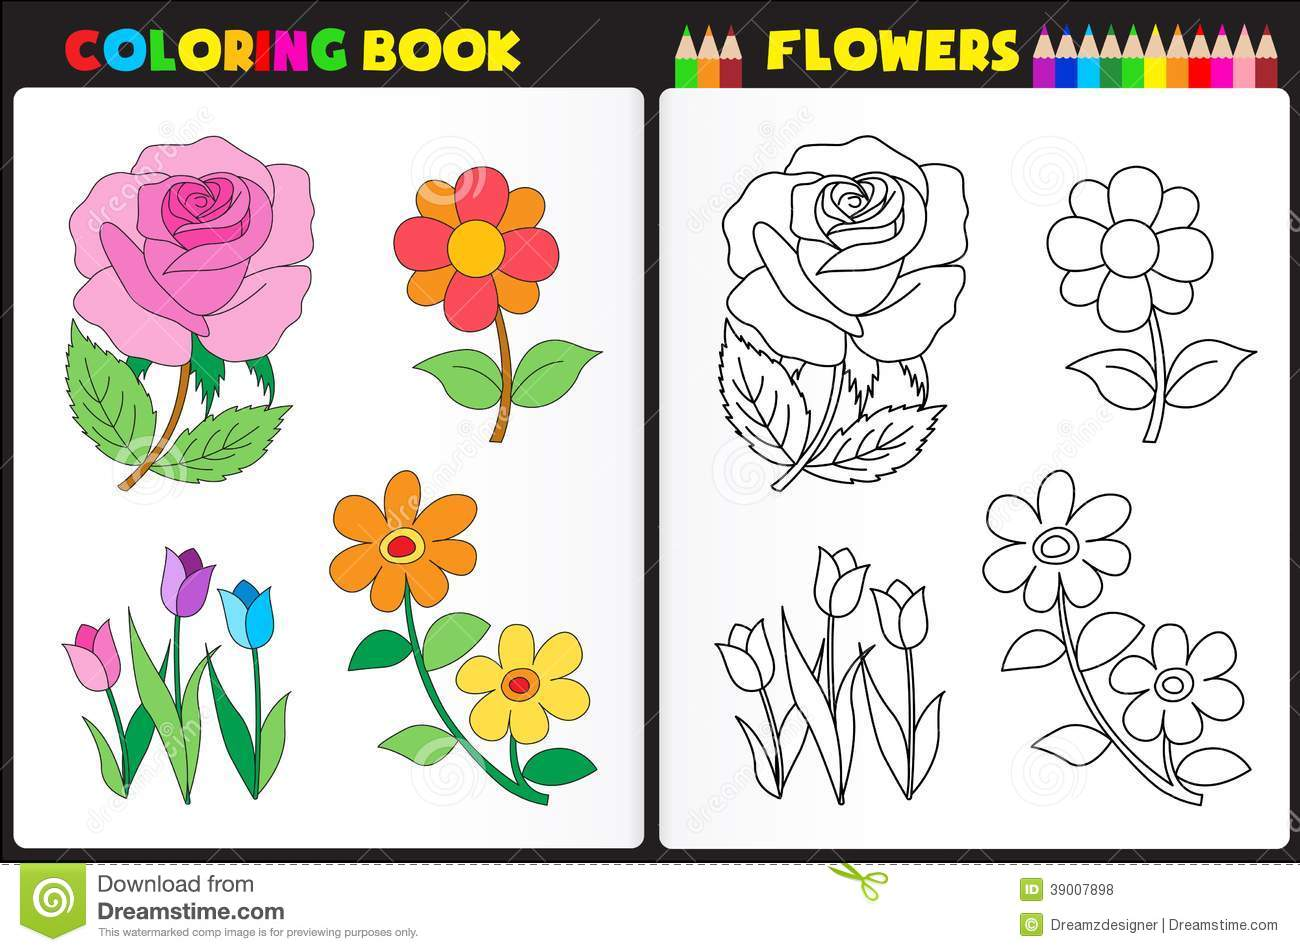 book page for kids with colorful flowers and sketches to color